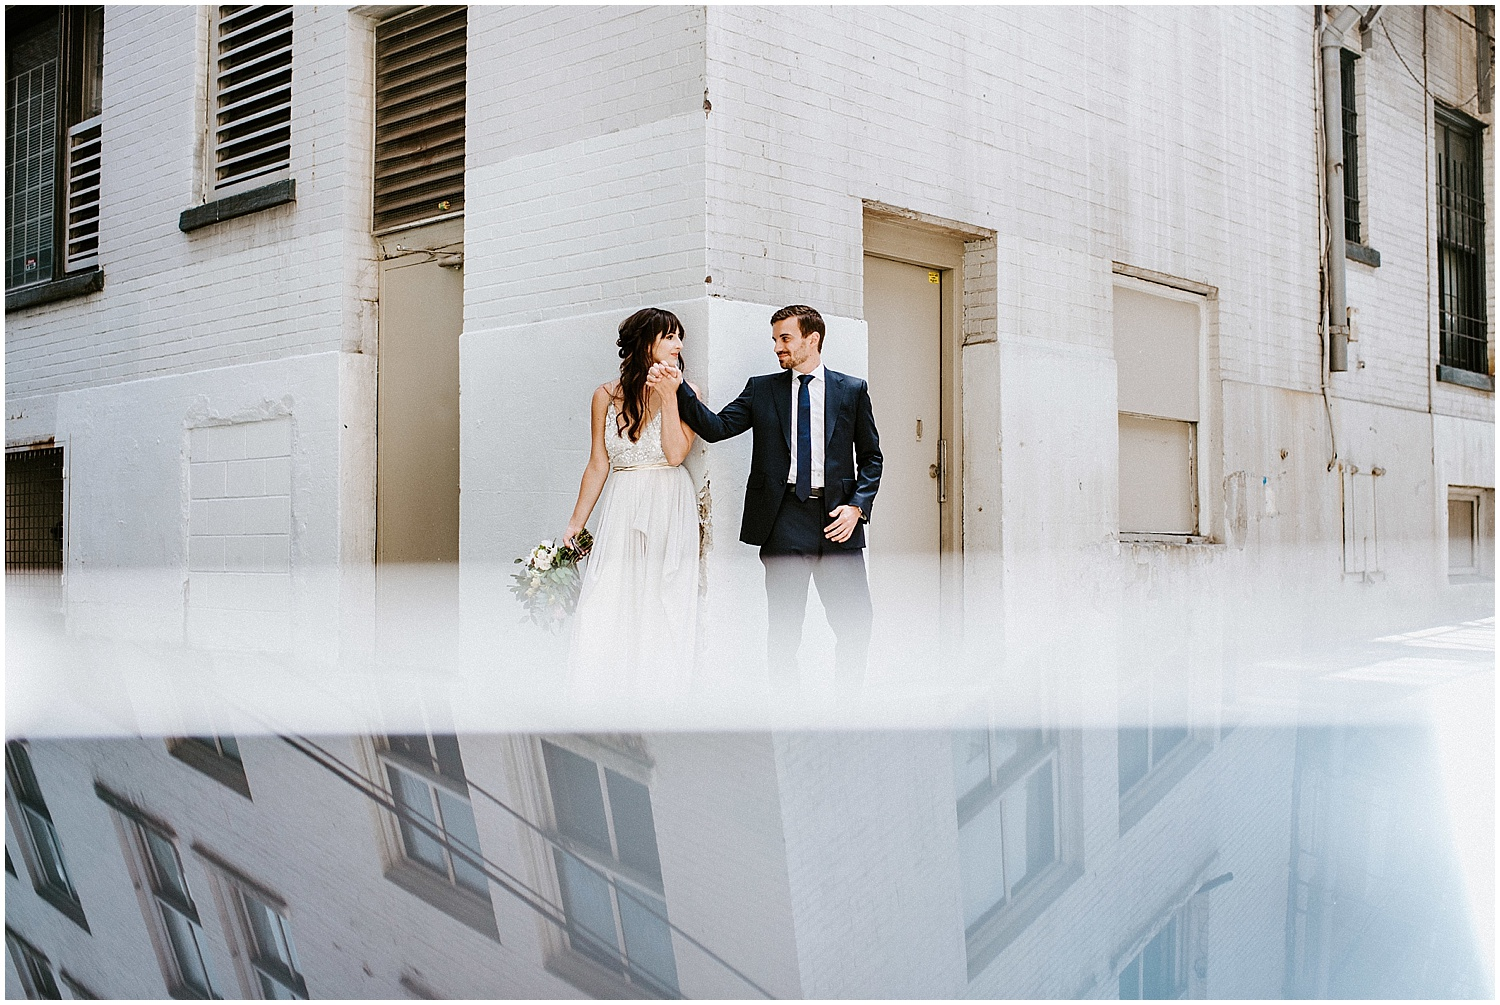 the_permanent_downtown_vancouver_wedding_0079.jpg